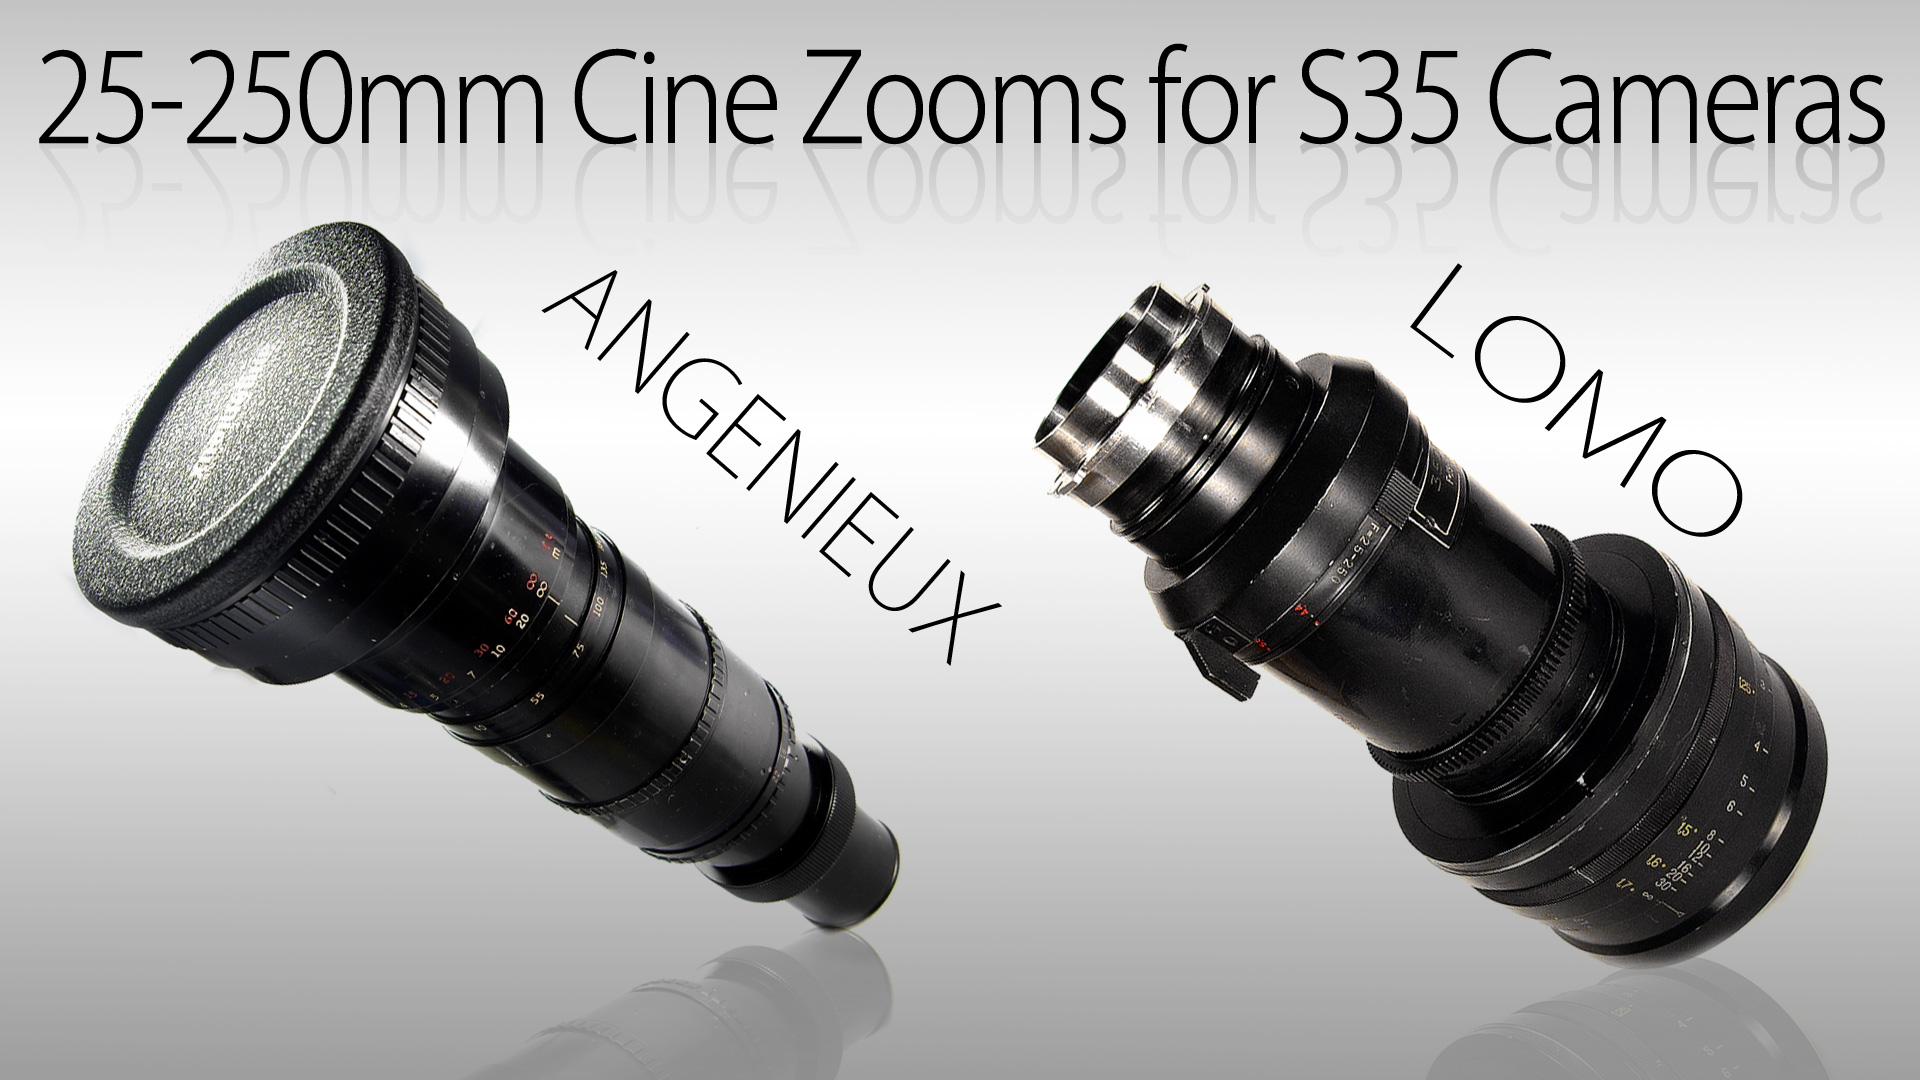 25-250mm Cine Zooms for S35 Cameras